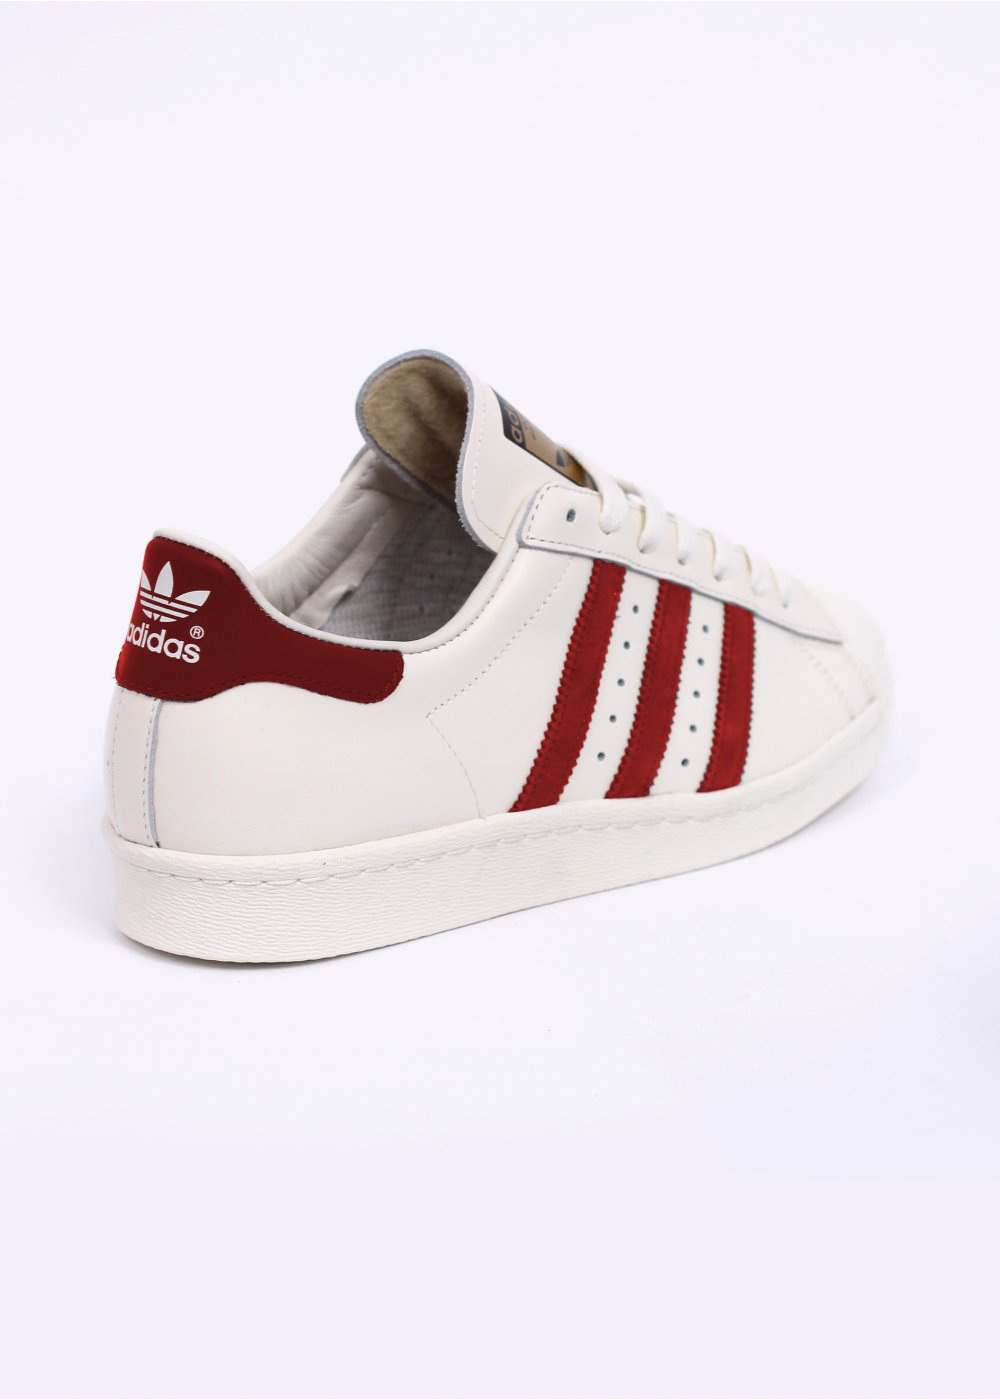 adca67b79d6a Superstar 80s Vintage Deluxe Trainers - Vintage White   Scarlet   Off White